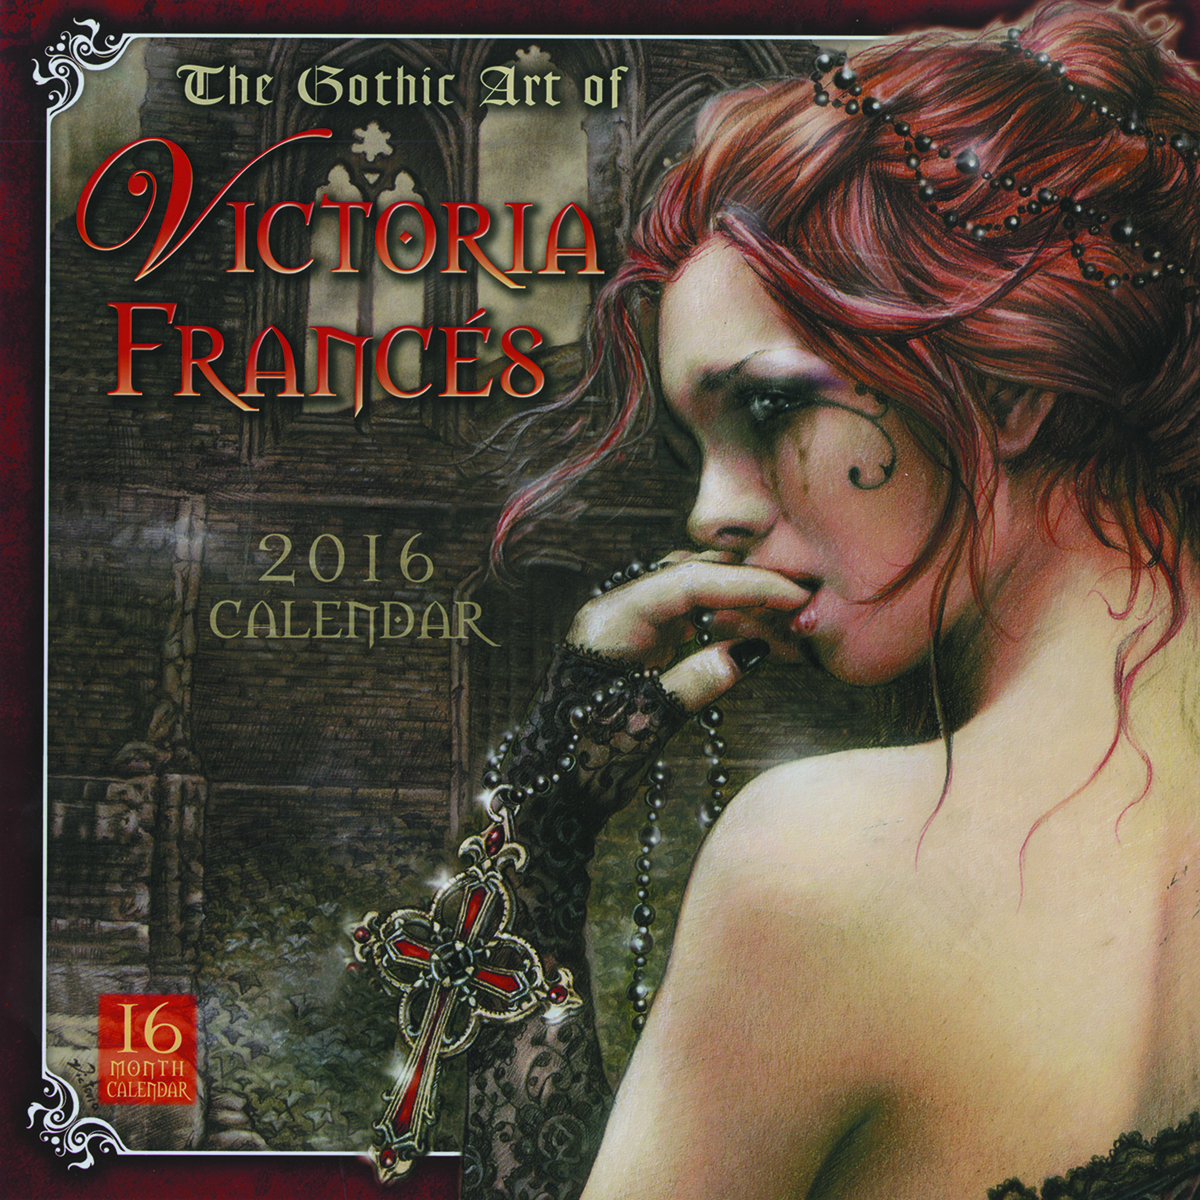 PREVIEWSworld - GOTHIC ART OF VICTORIA FRANCES 2016 WALL